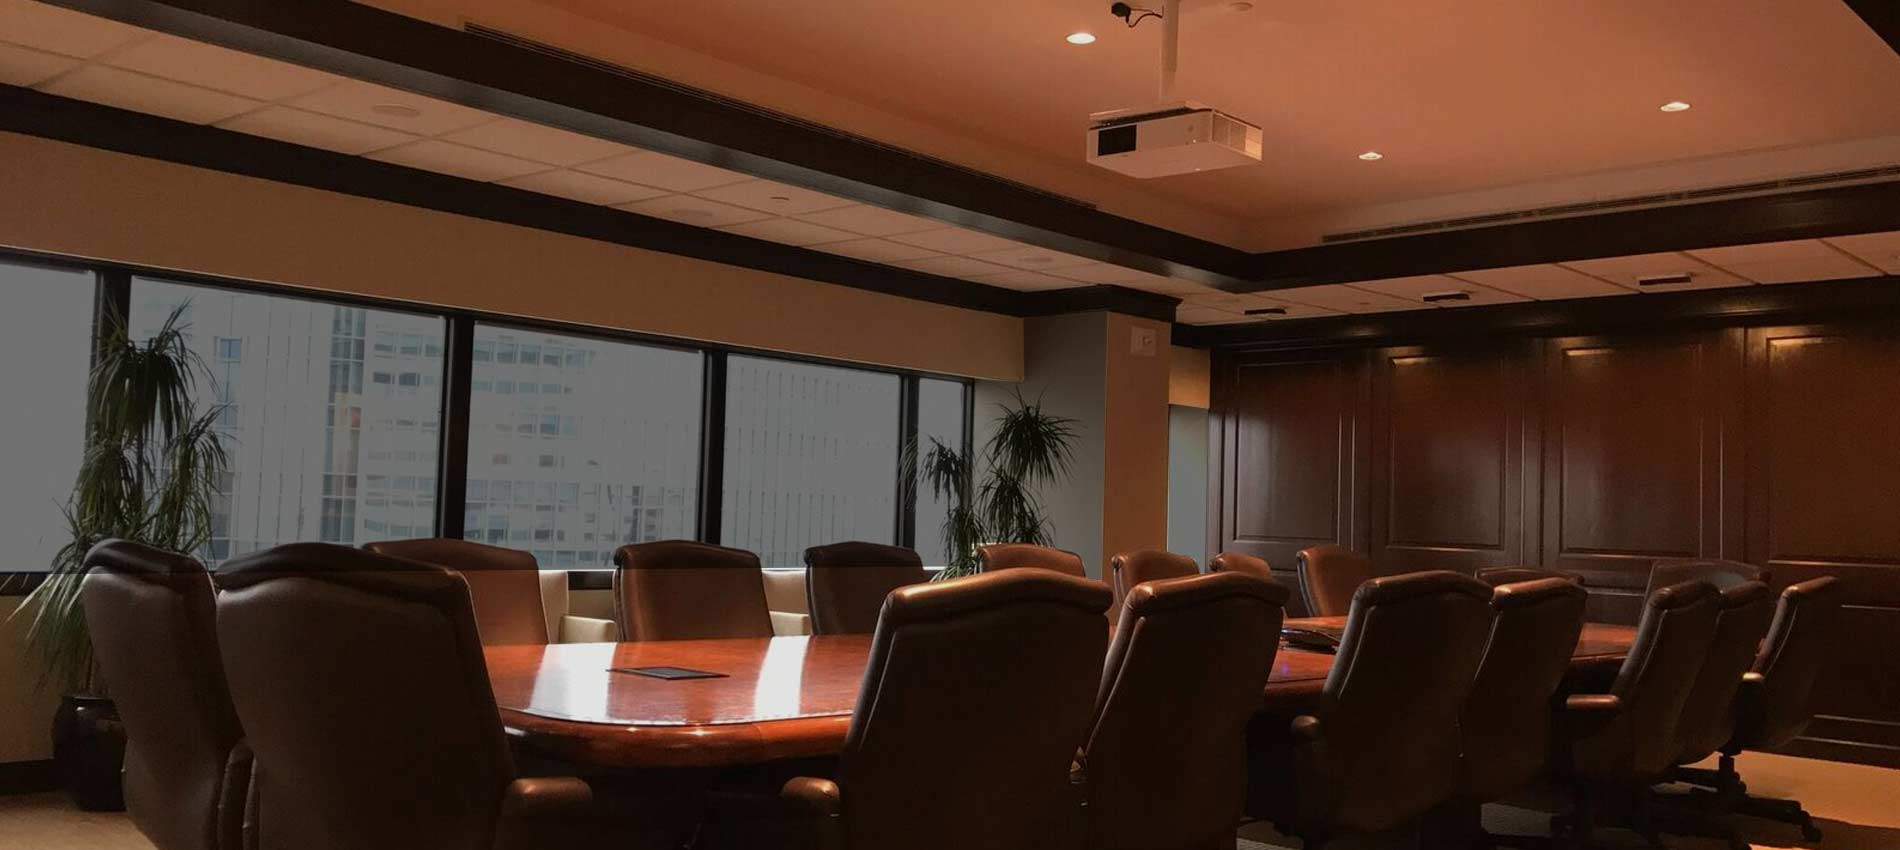 Conference Room and Board Room Smart Systems for Oklahoma City Tulsa Edmond